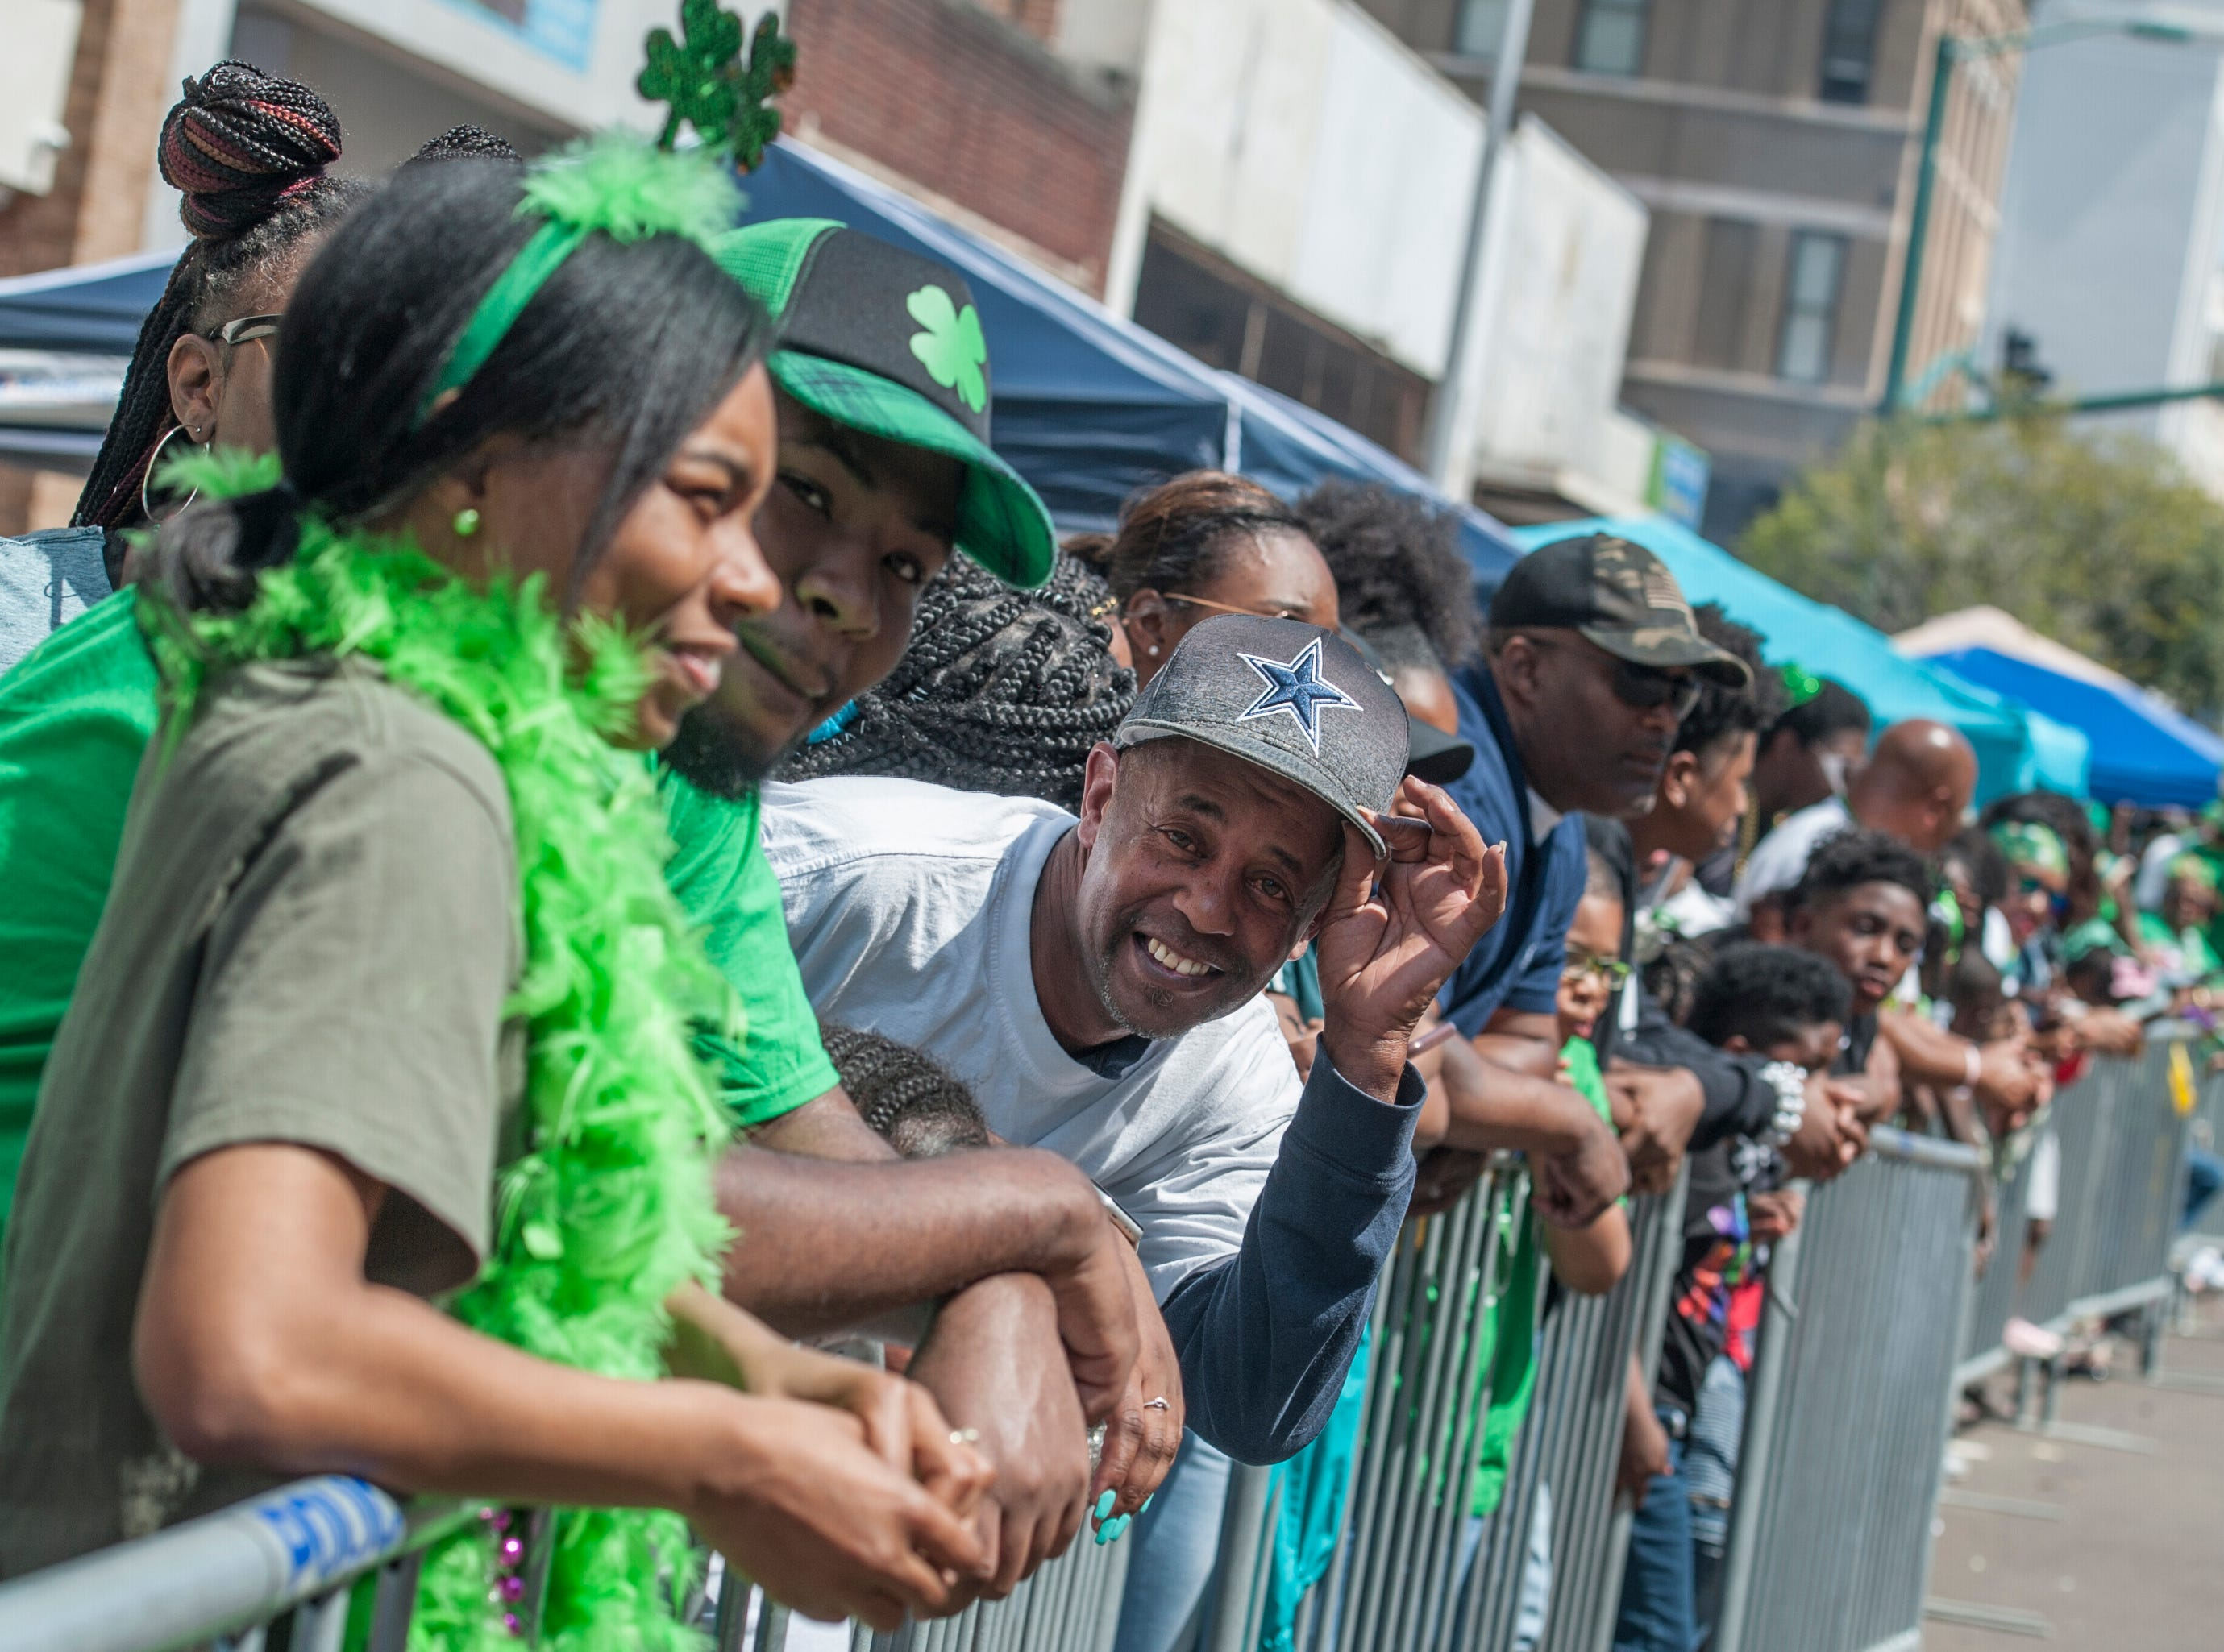 The crowd is in a good mood and ready as they wait for the start of the Hal's St. Paddy's Day Parade on Saturday, March 23, 2019,.